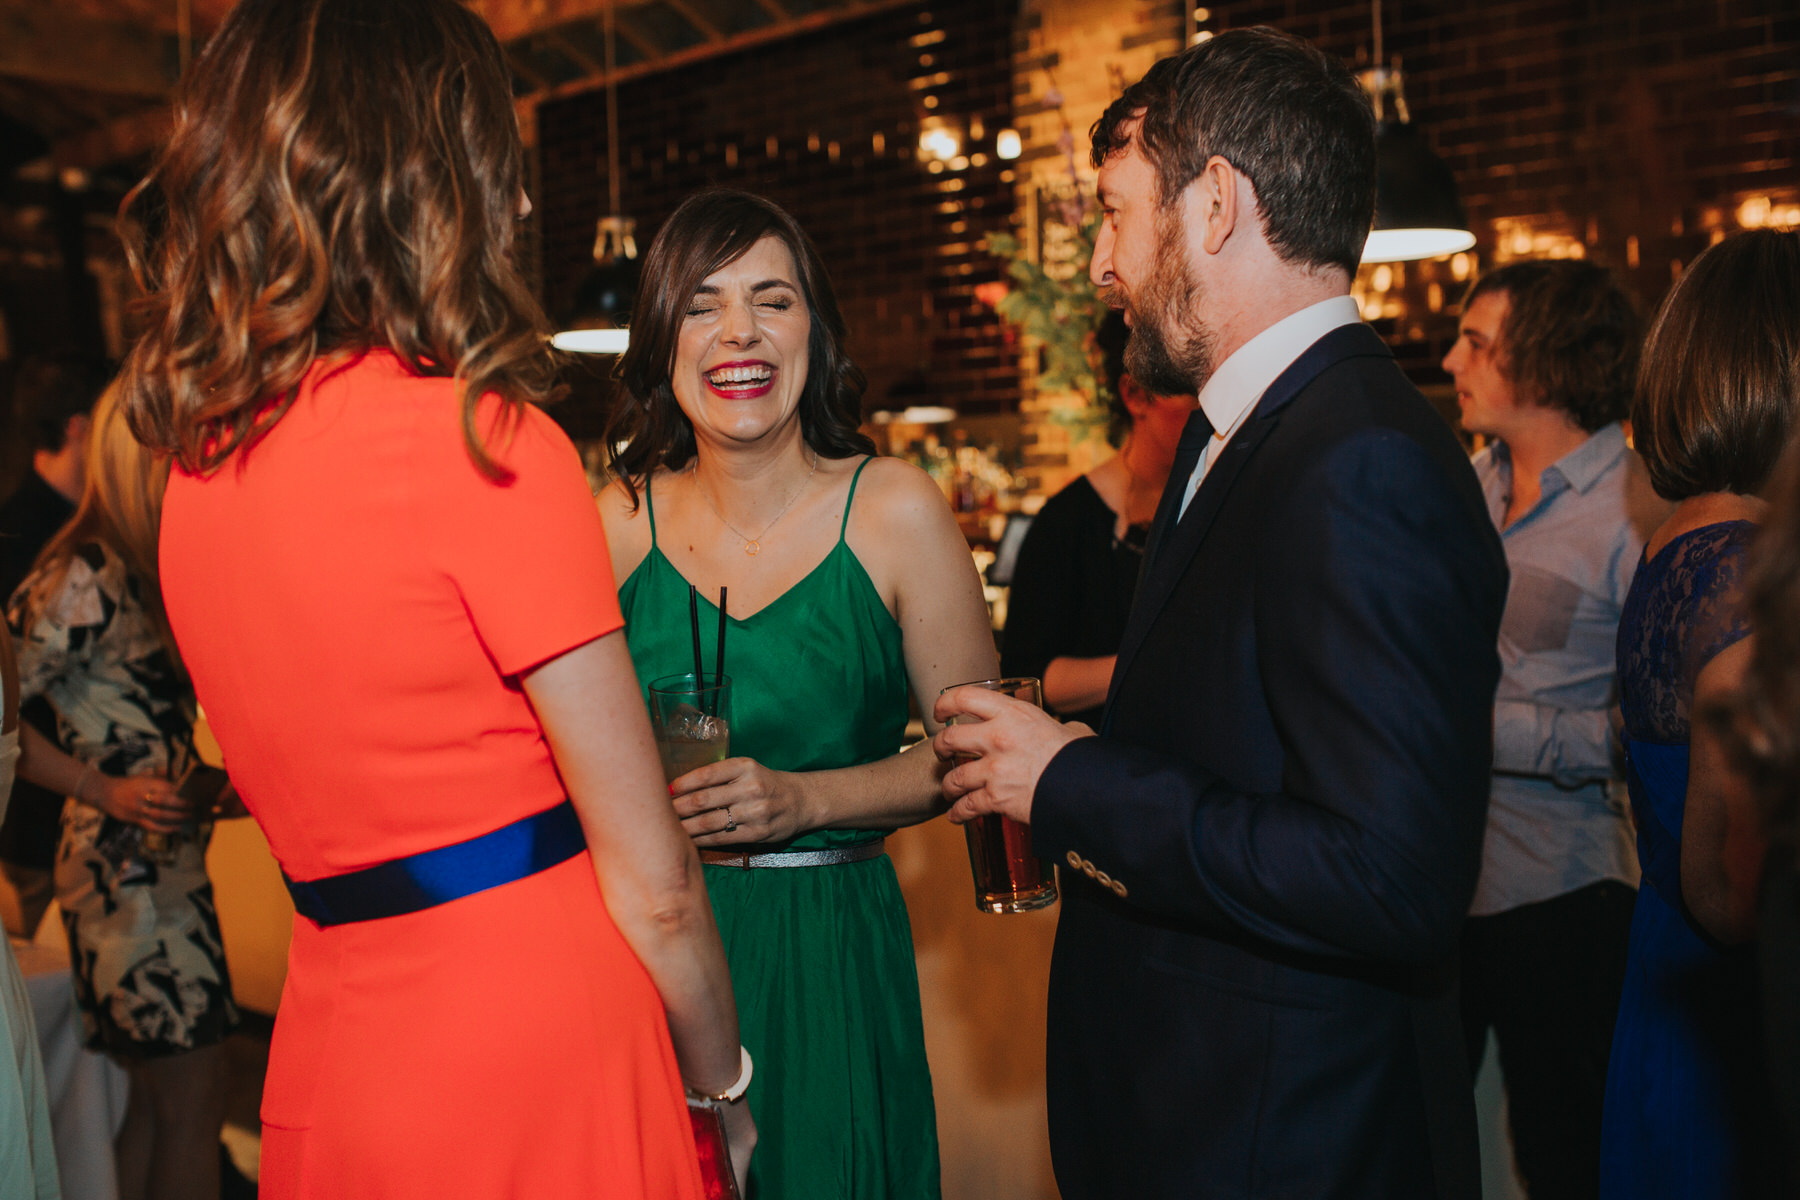 160-St Chads Place guests laughing reportage wedding.jpg